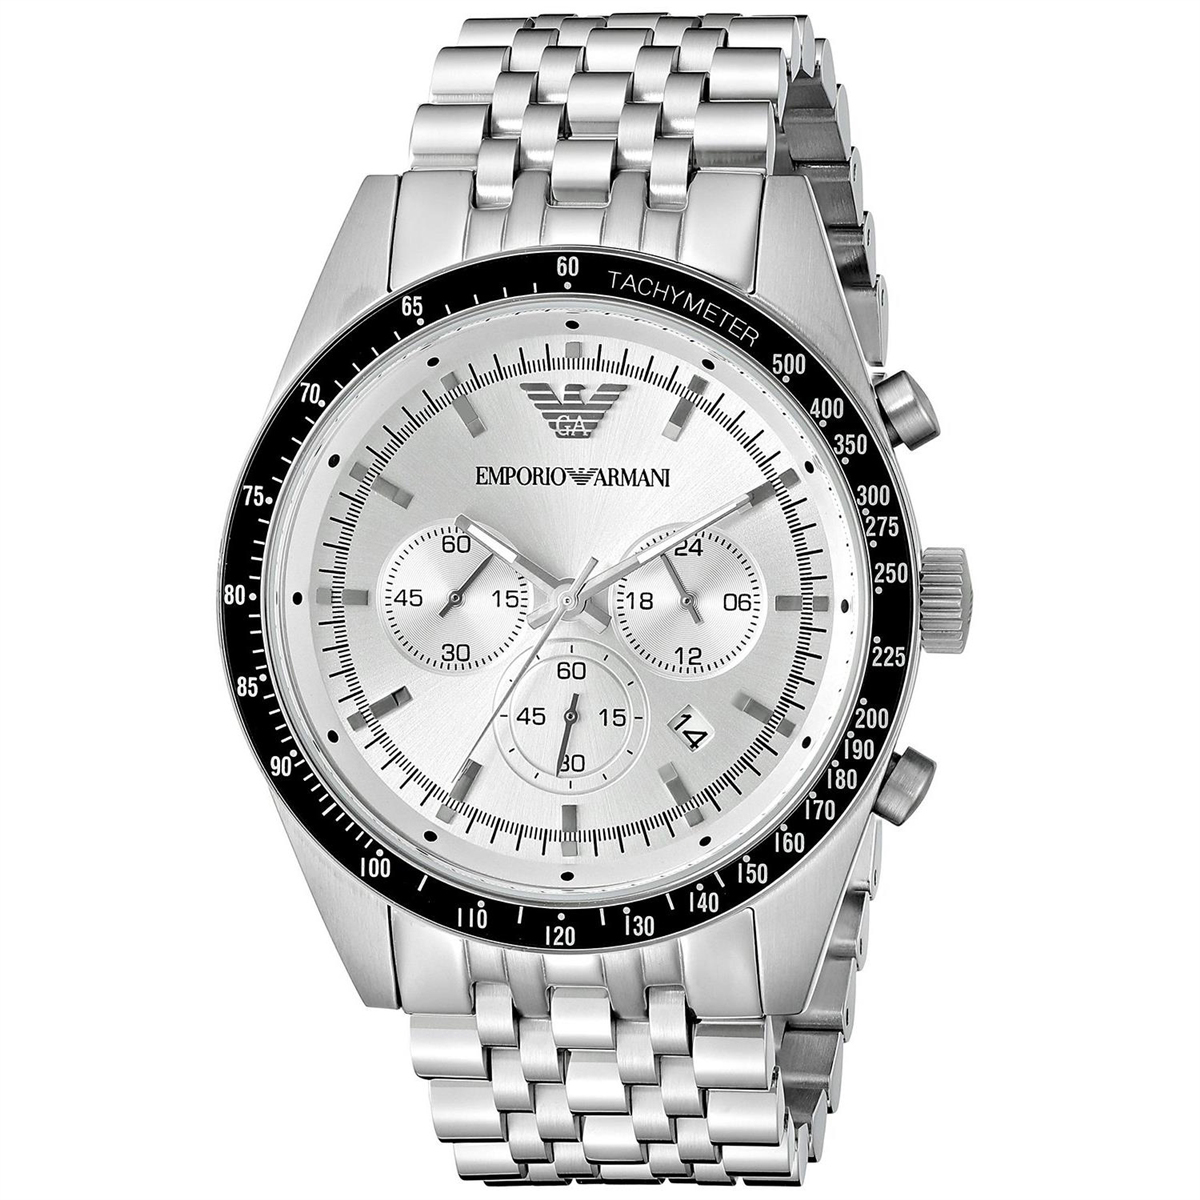 Mens Emporio Armani Chronograph Watch AR6073